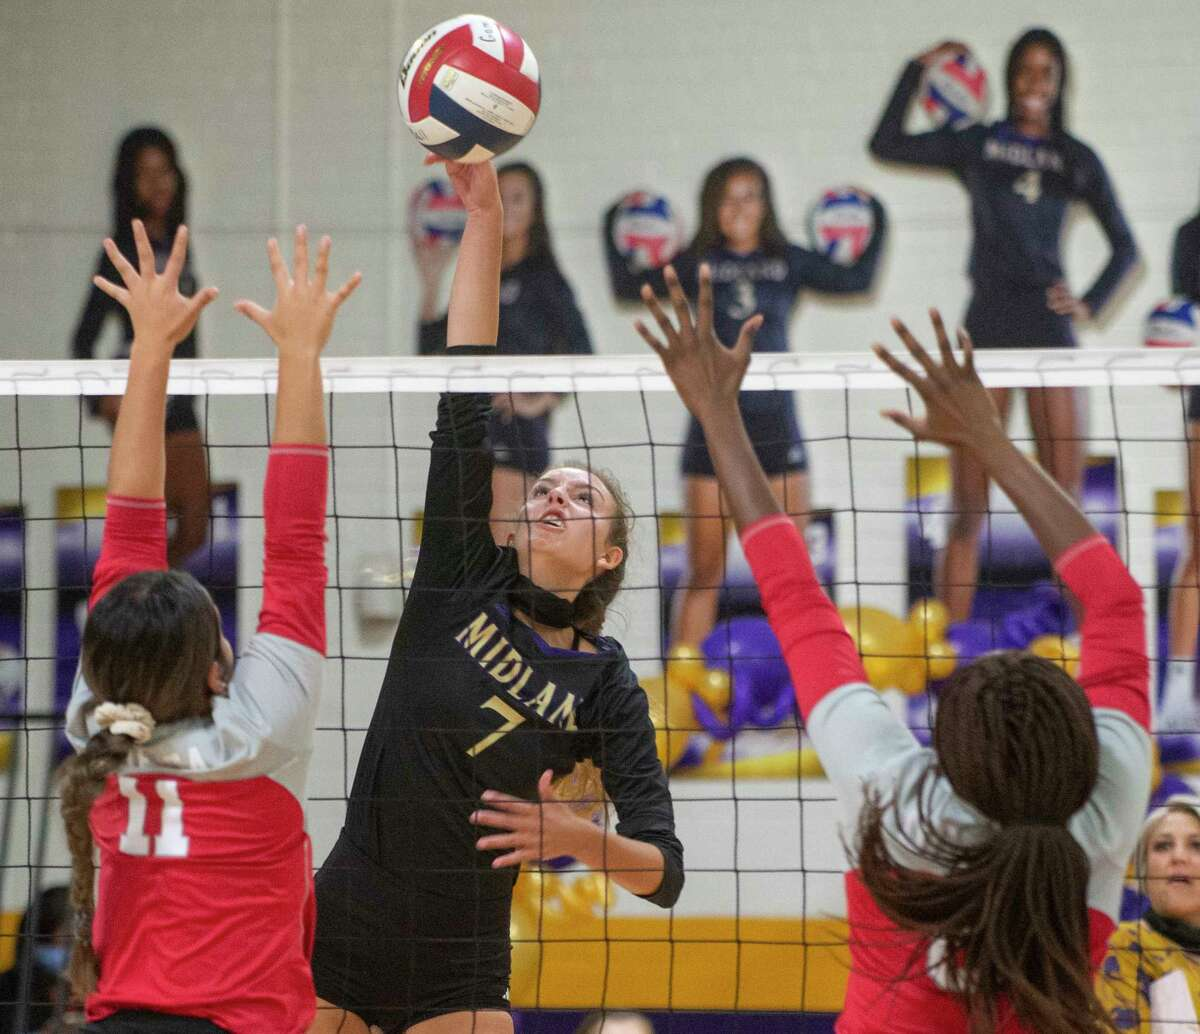 Midland High's Olivia Hale goes up for the hit as Odessa High's Kaia Minjarez and Julisha Terry try to block 09/29/2020 at the Midland High gym. Tim Fischer/Reporter-Telegram